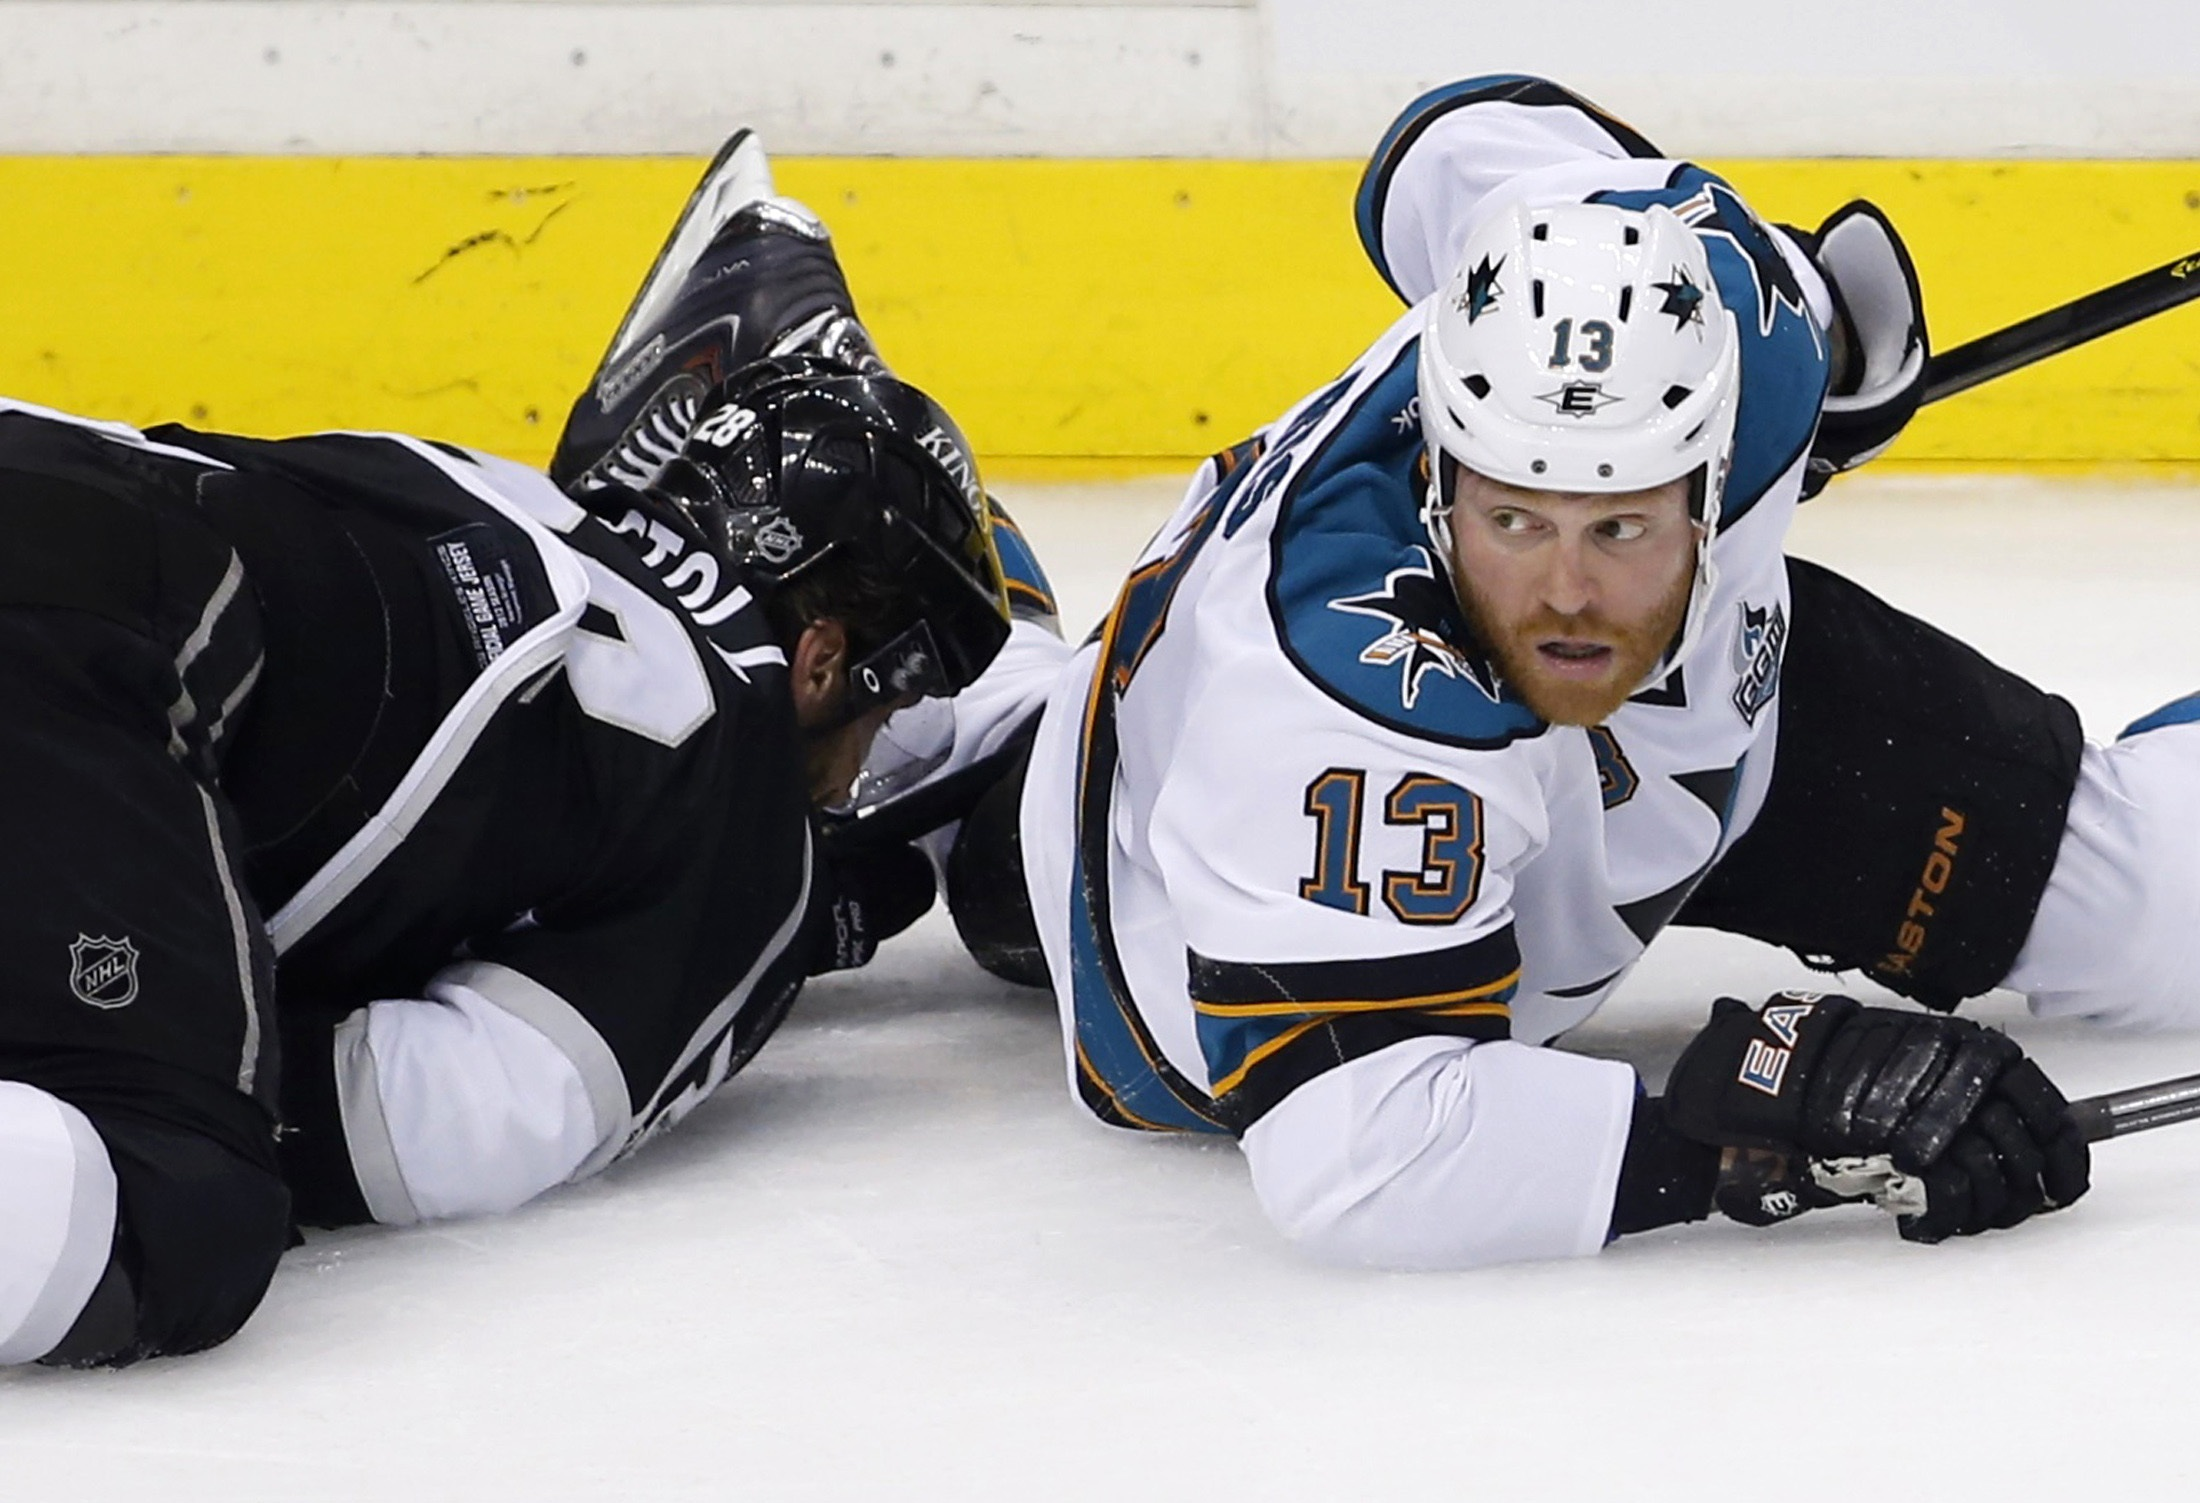 San Jose's Raffi Torres is out for rest of the series against Los Angeles for his hit on Jarret Stoll. (Reuters)